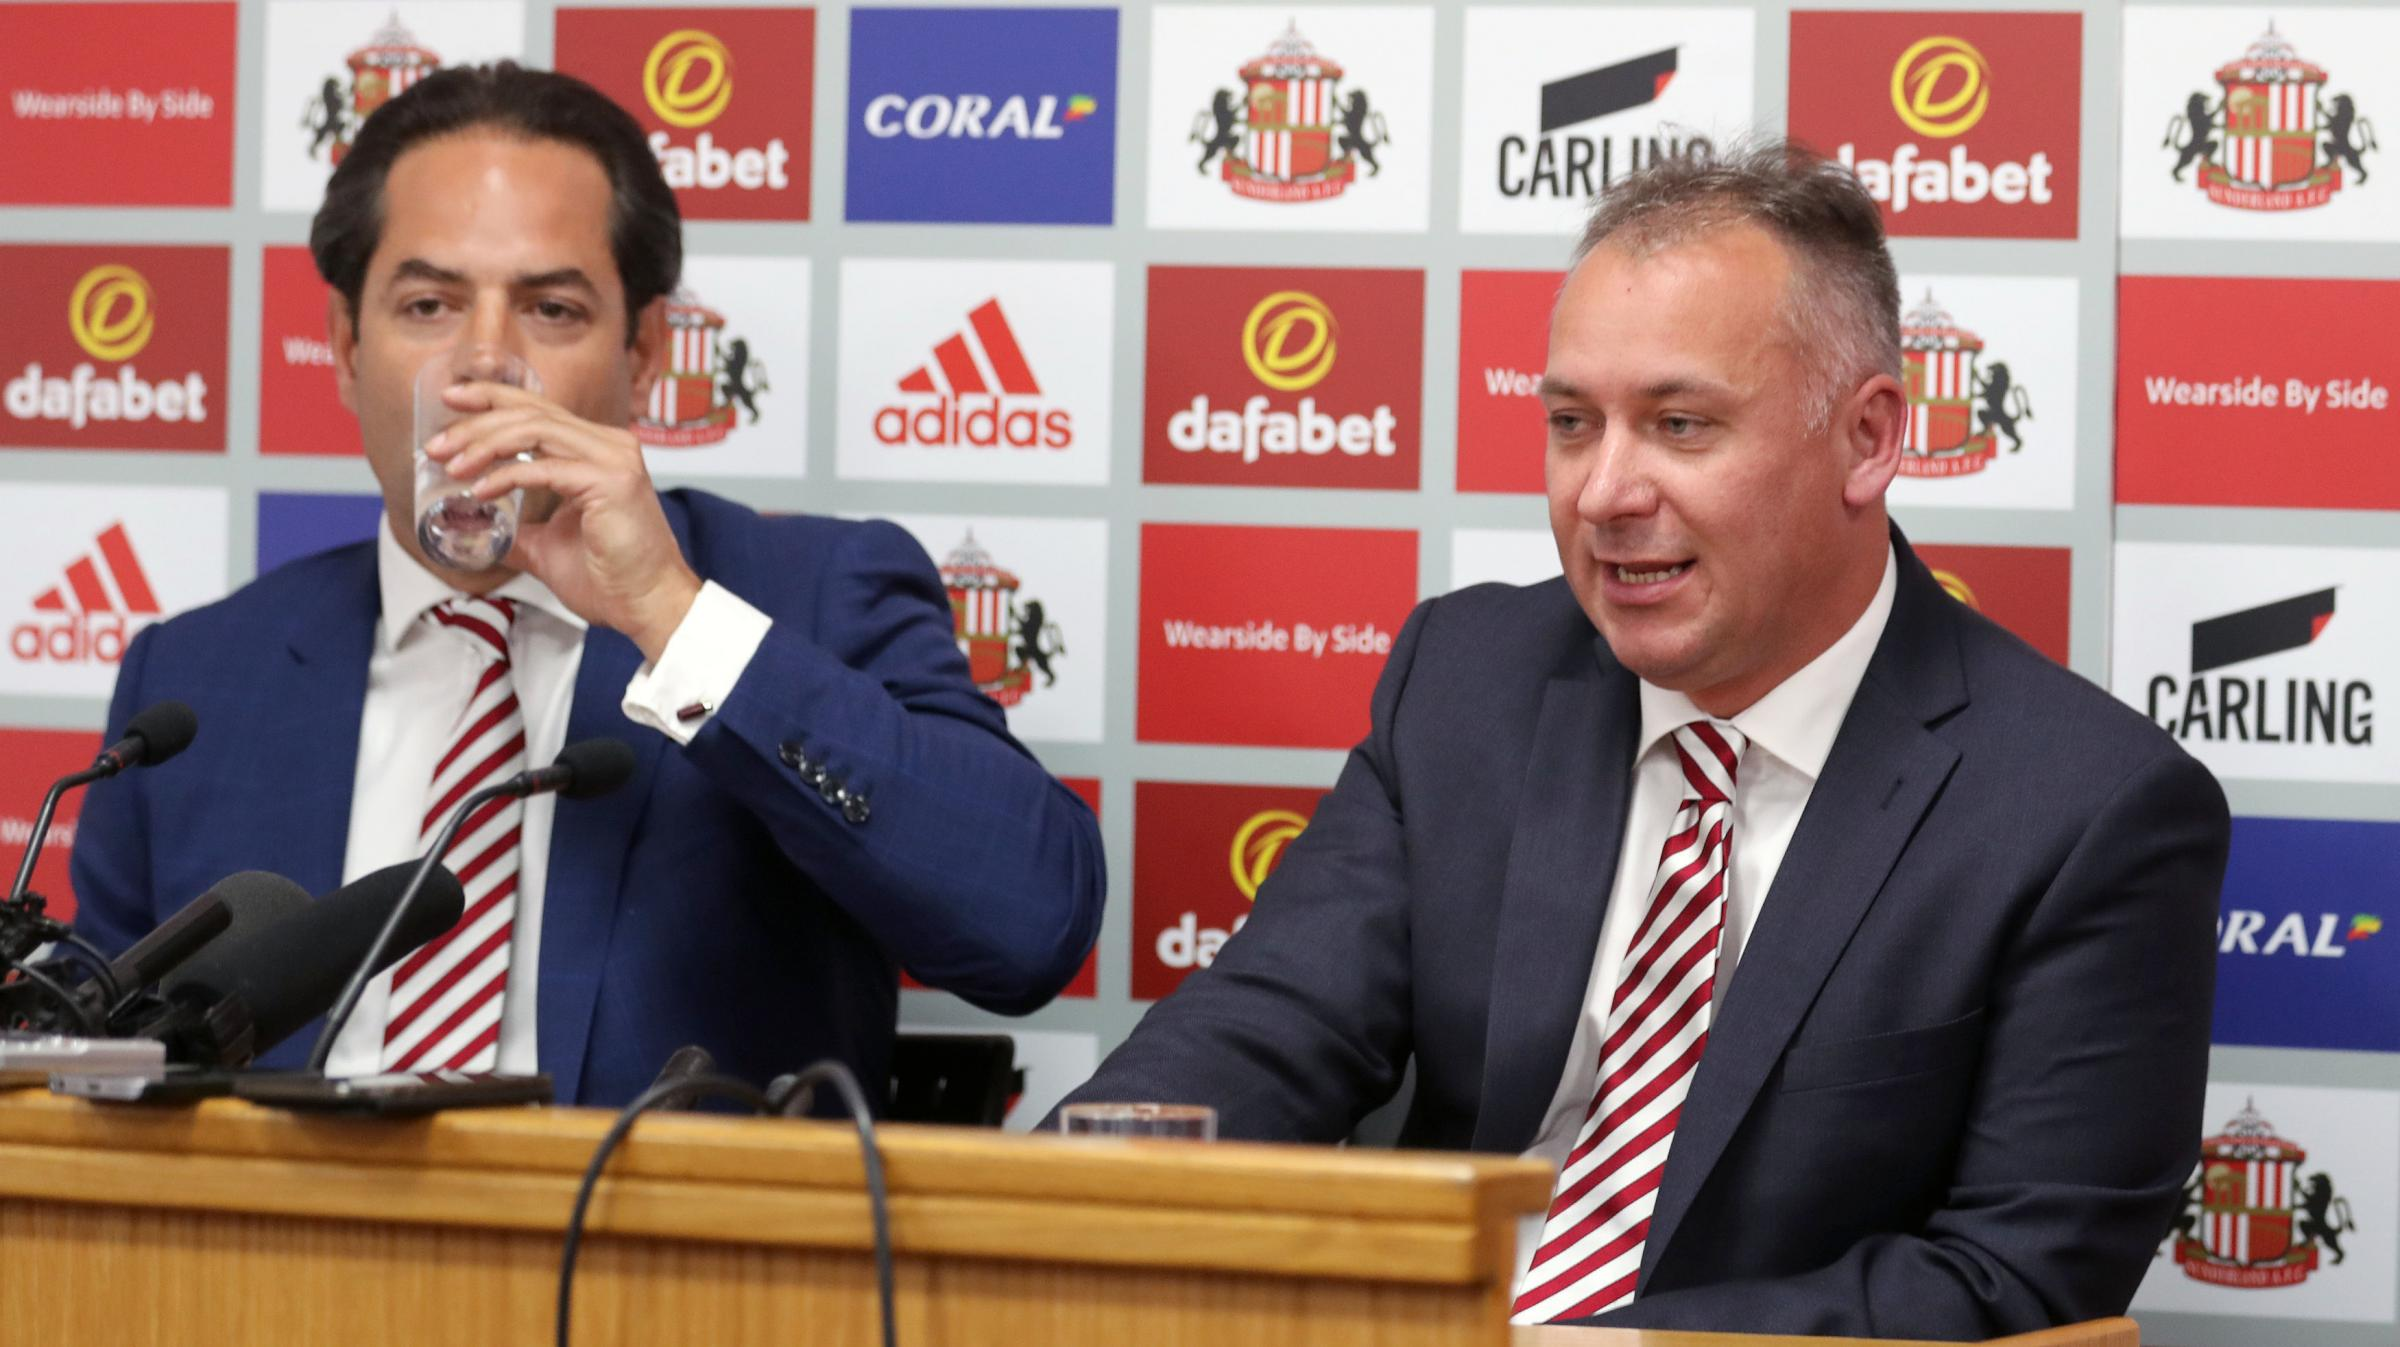 Sunderland new owner Stewart Donald (right) during the press conference at the Stadium of Light, Sunderland. PRESS ASSOCIATION Photo. Picture date: Monday May 21, 2018. See PA story SOCCER Sunderland. Photo credit should read: Owen Humphreys/PA Wire. REST